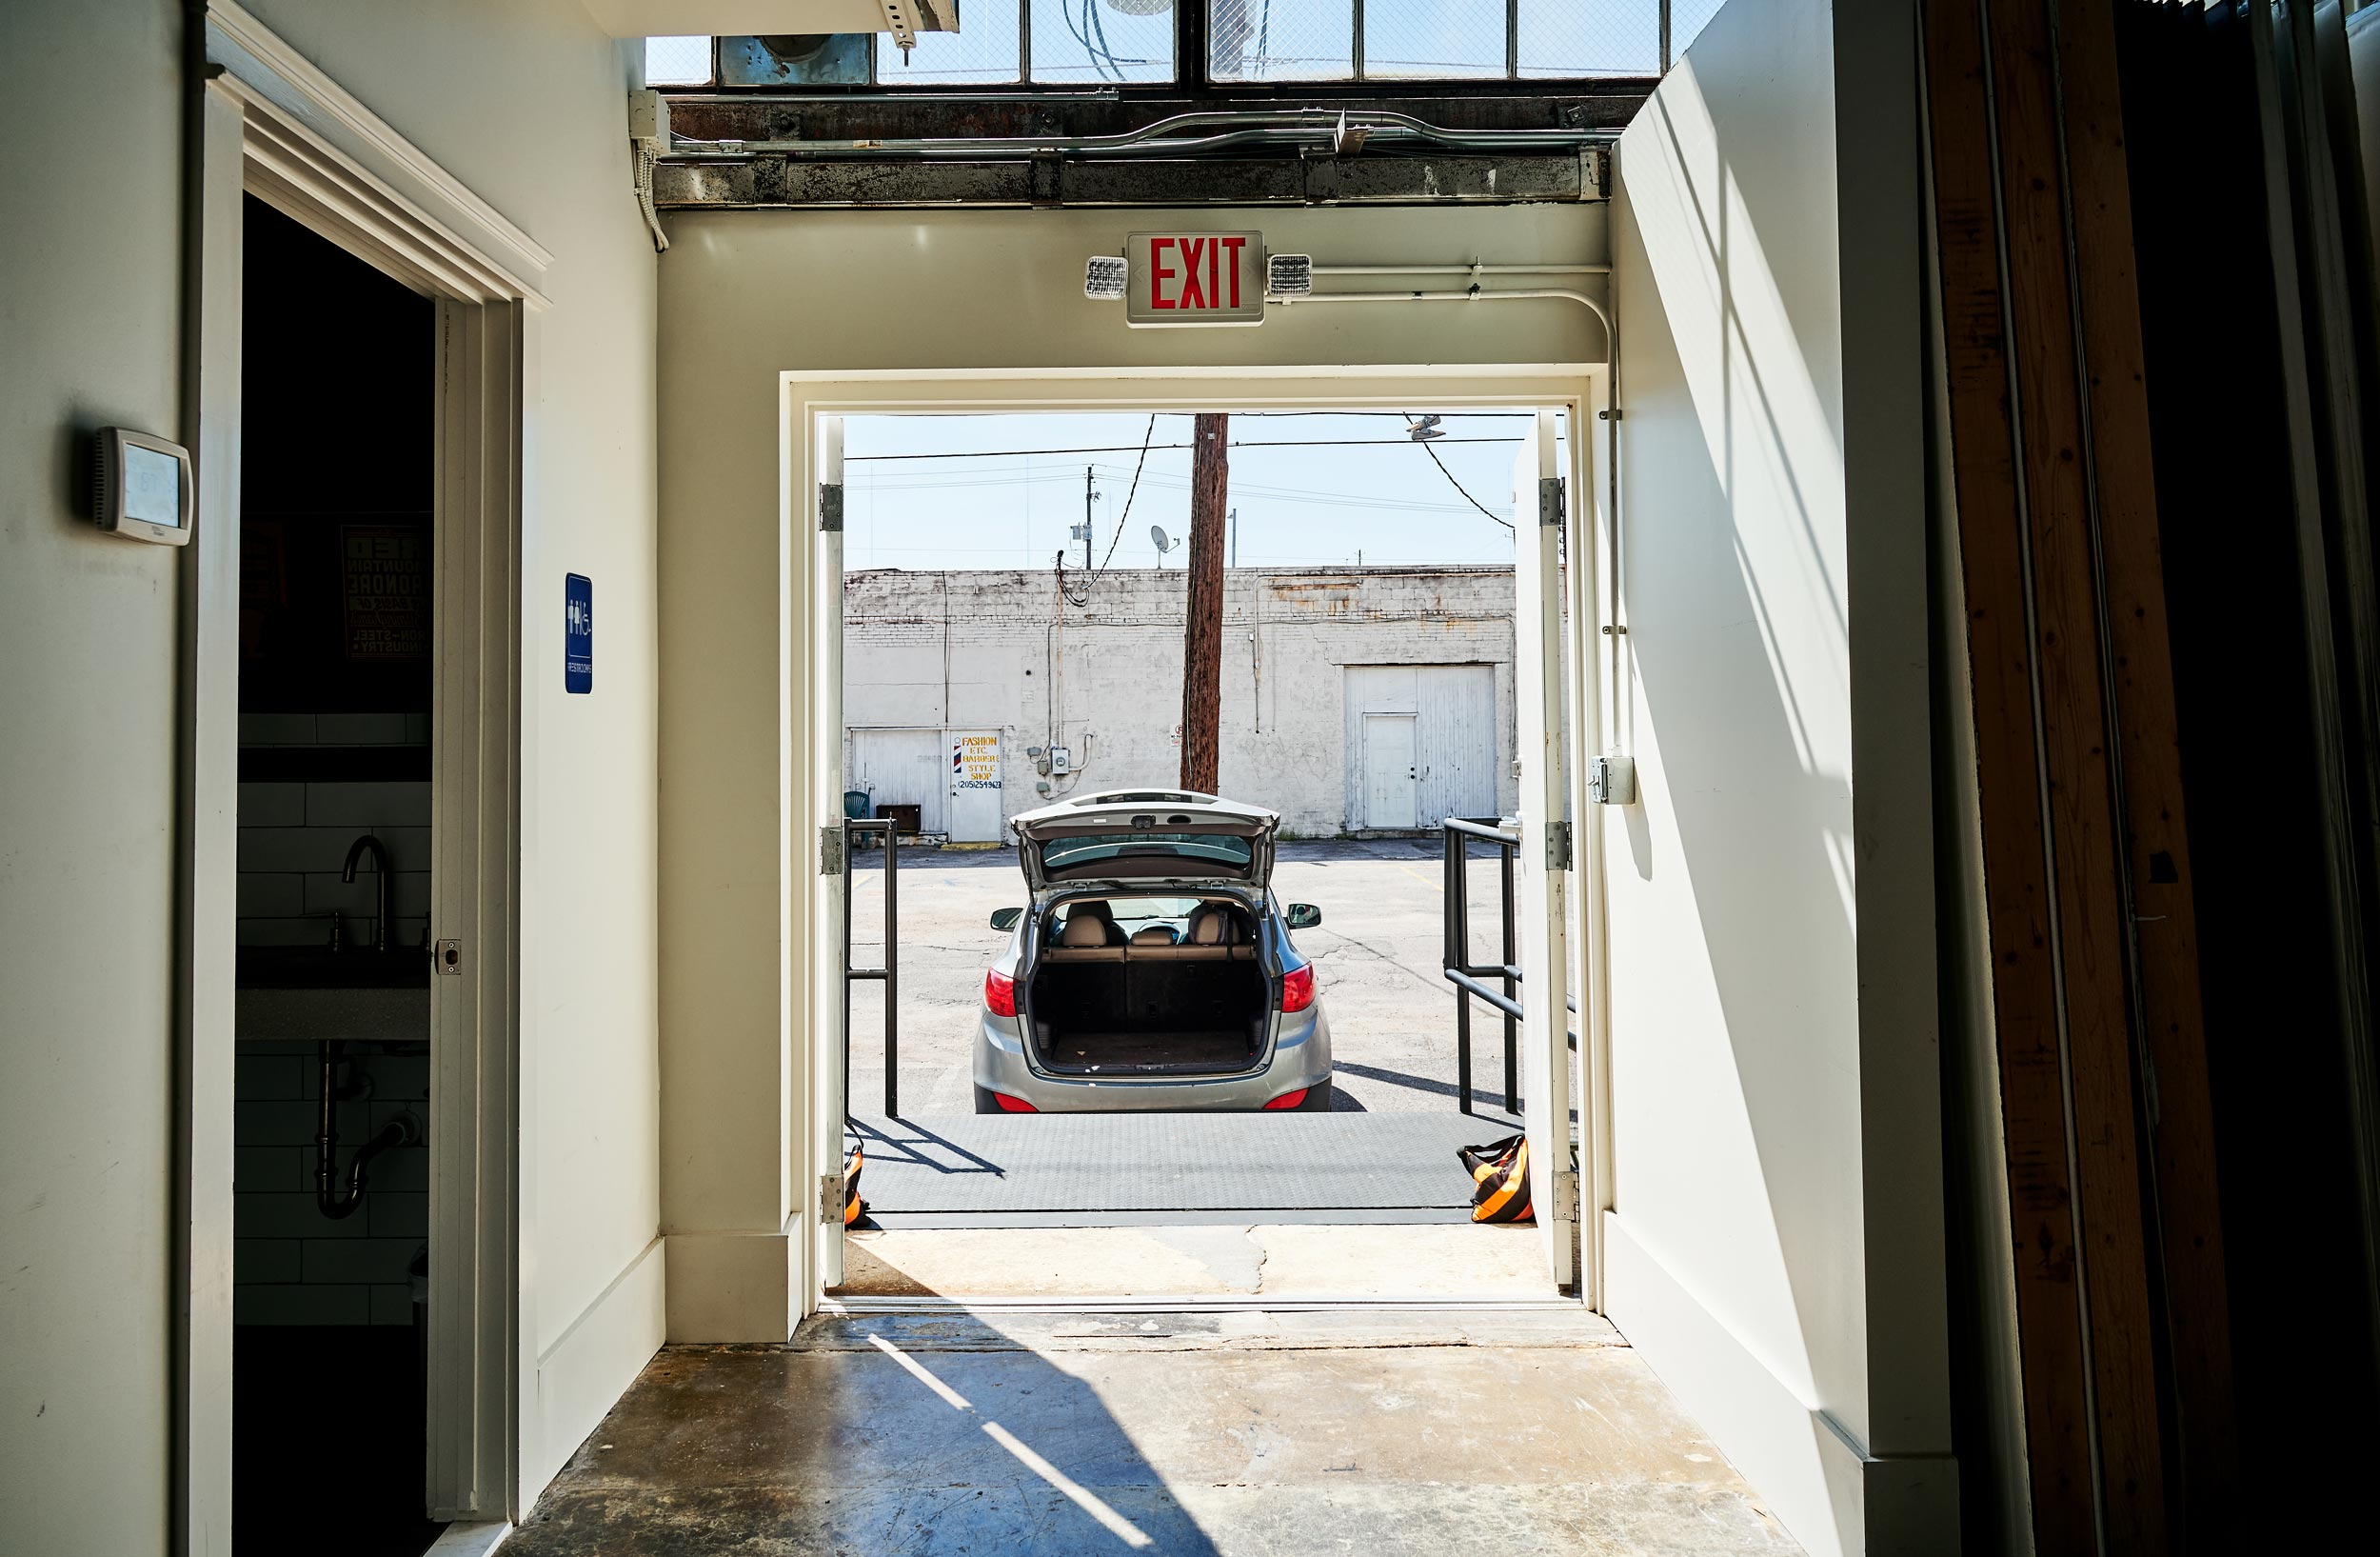 Load in - Studio 104 has a 6 foot loading dock accessible through the alley way behind the studio that opens directly into the shooting space. Loading in and out is quick and easy!